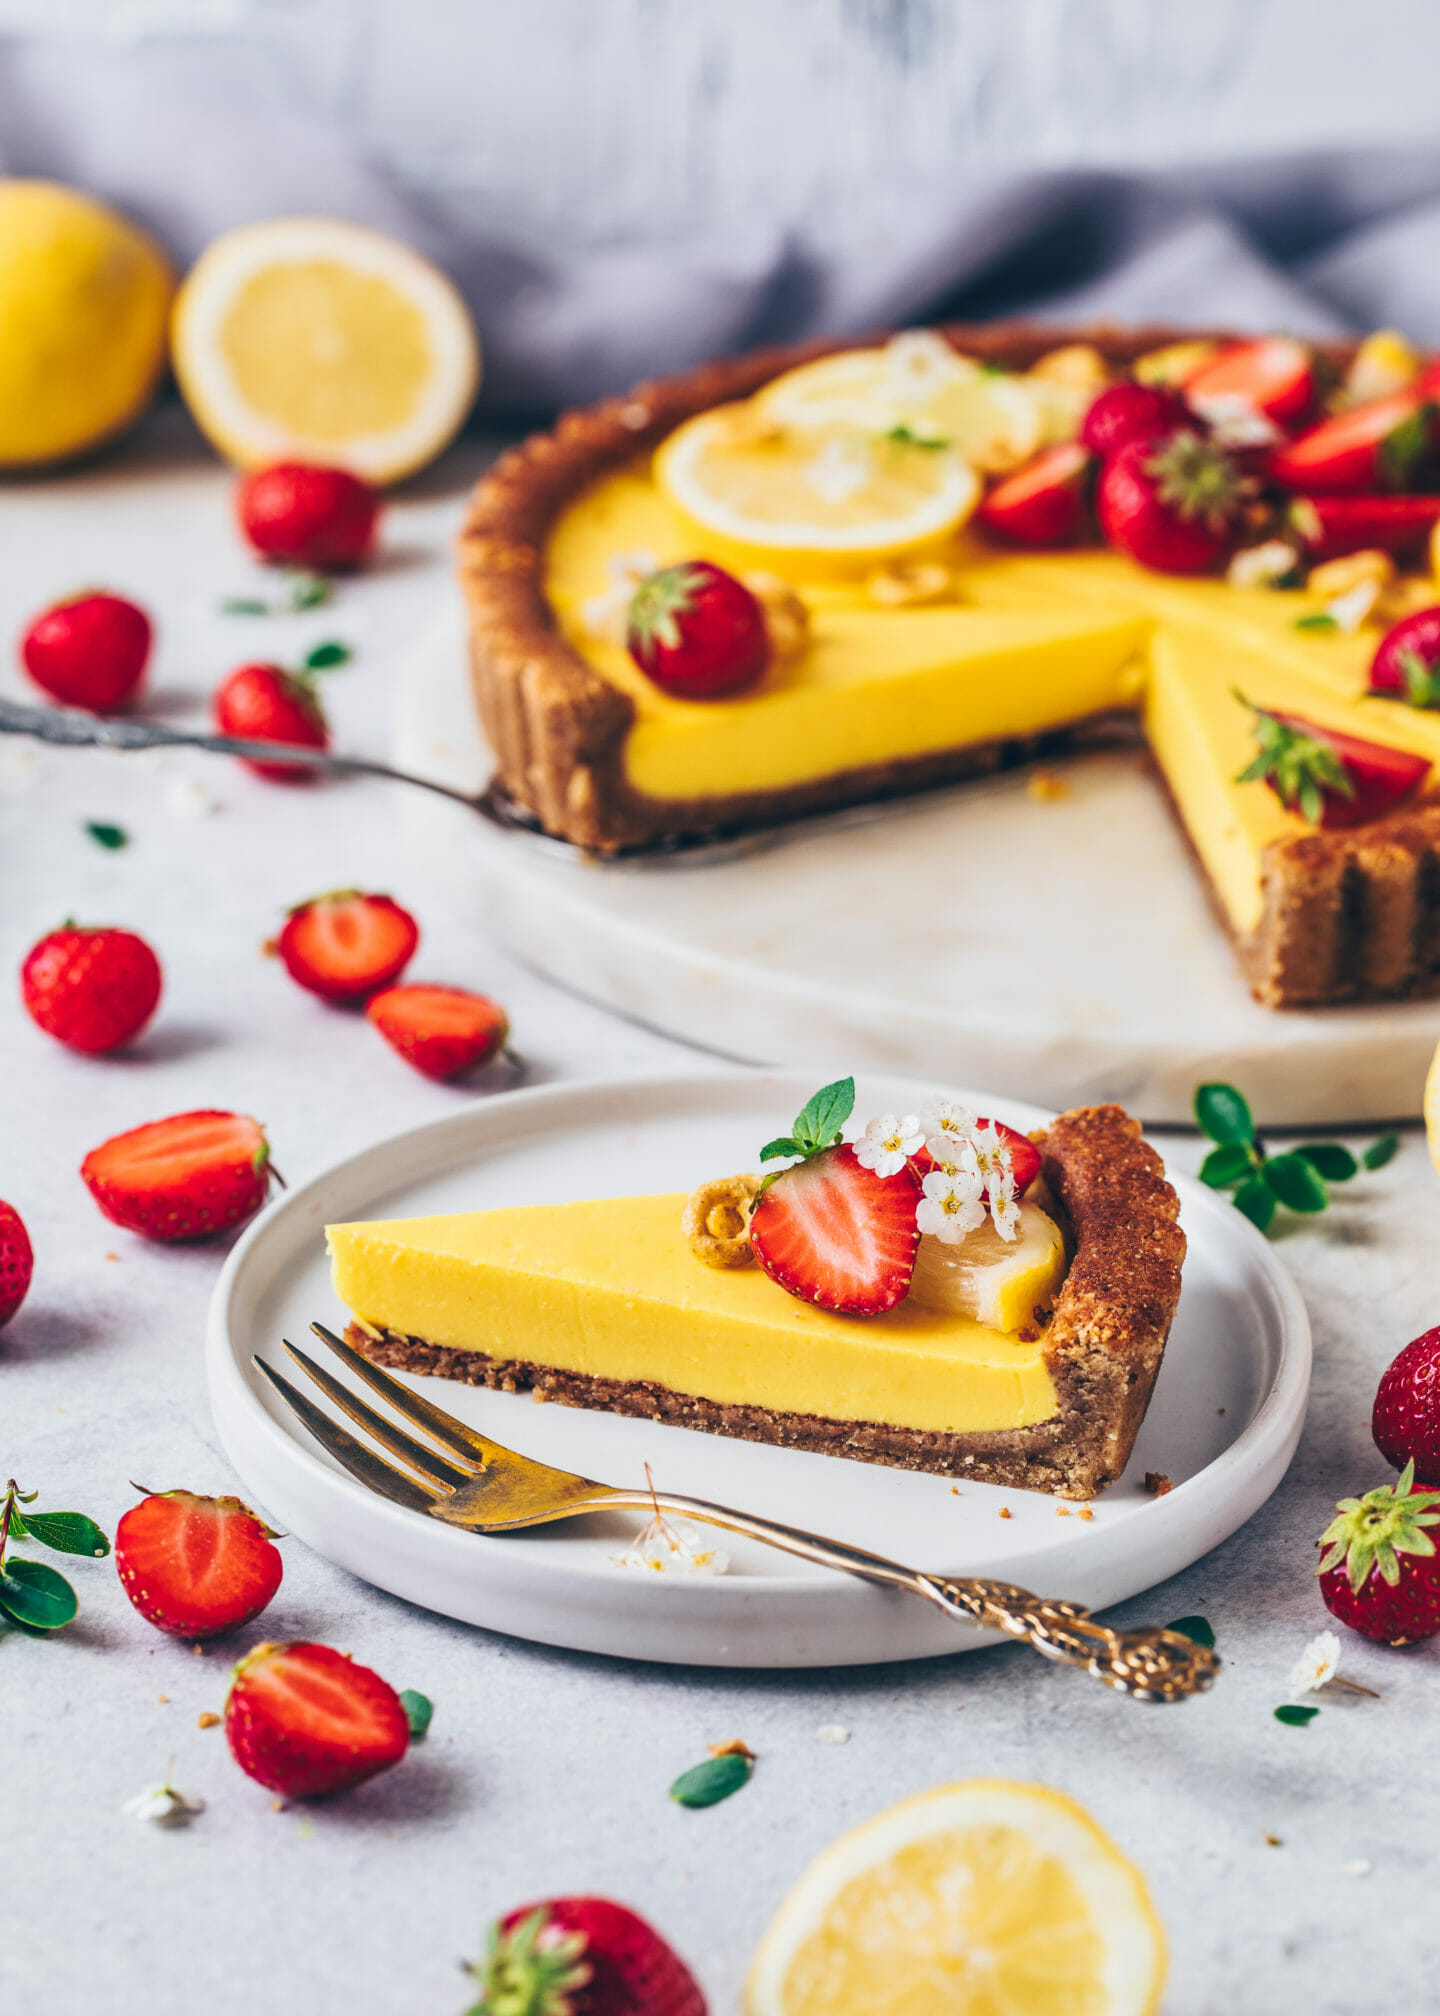 Lemon Tart Pie with Strawberries